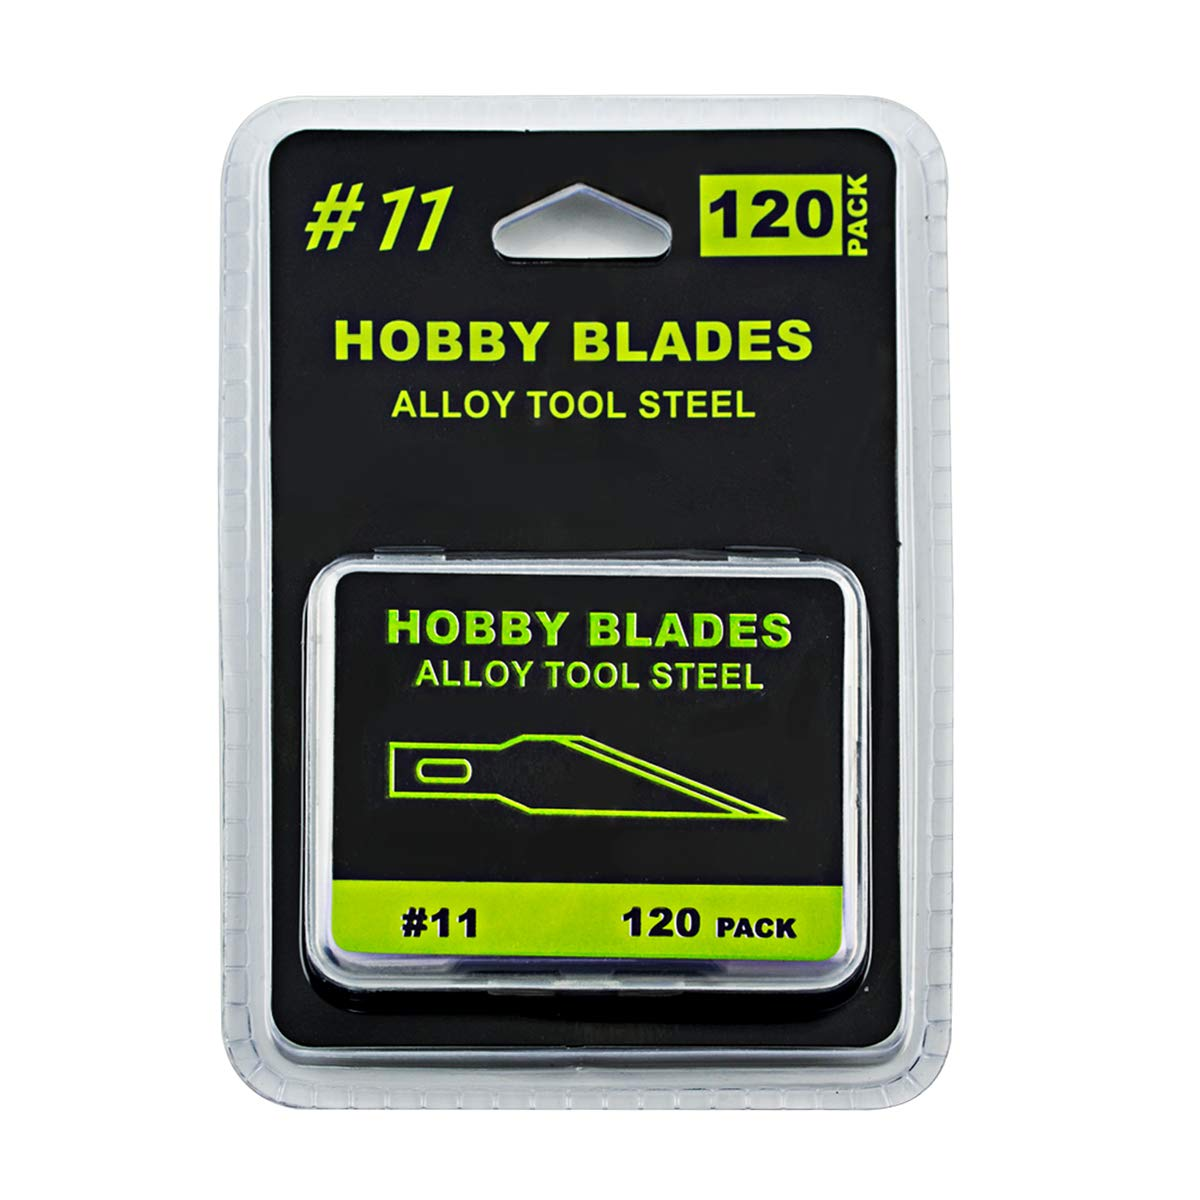 #11 Hobby Knife Blades (Pack of 120) Art Blades Cutting Tool with Storage Case for Craft, Hobby, Scrapbooking, Stencil Headley Tools